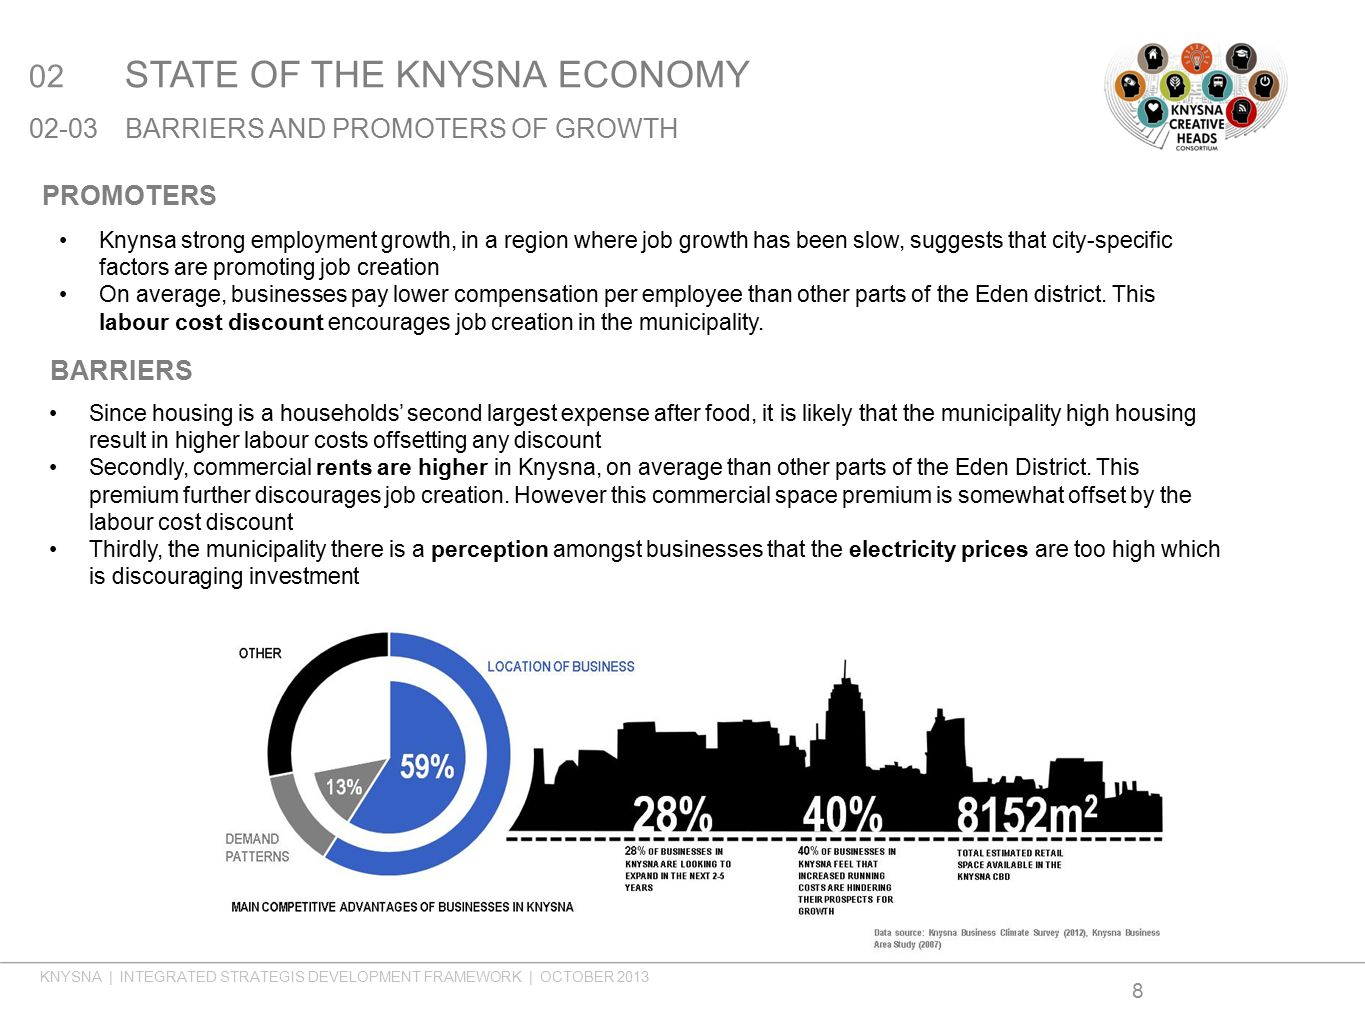 02 STATE OF THE KNYSNA ECONOMY 02-03BARRIERS AND PROMOTERS OF GROWTH 8 Knynsa strong employment growth, in a region where job growth has been slow, su